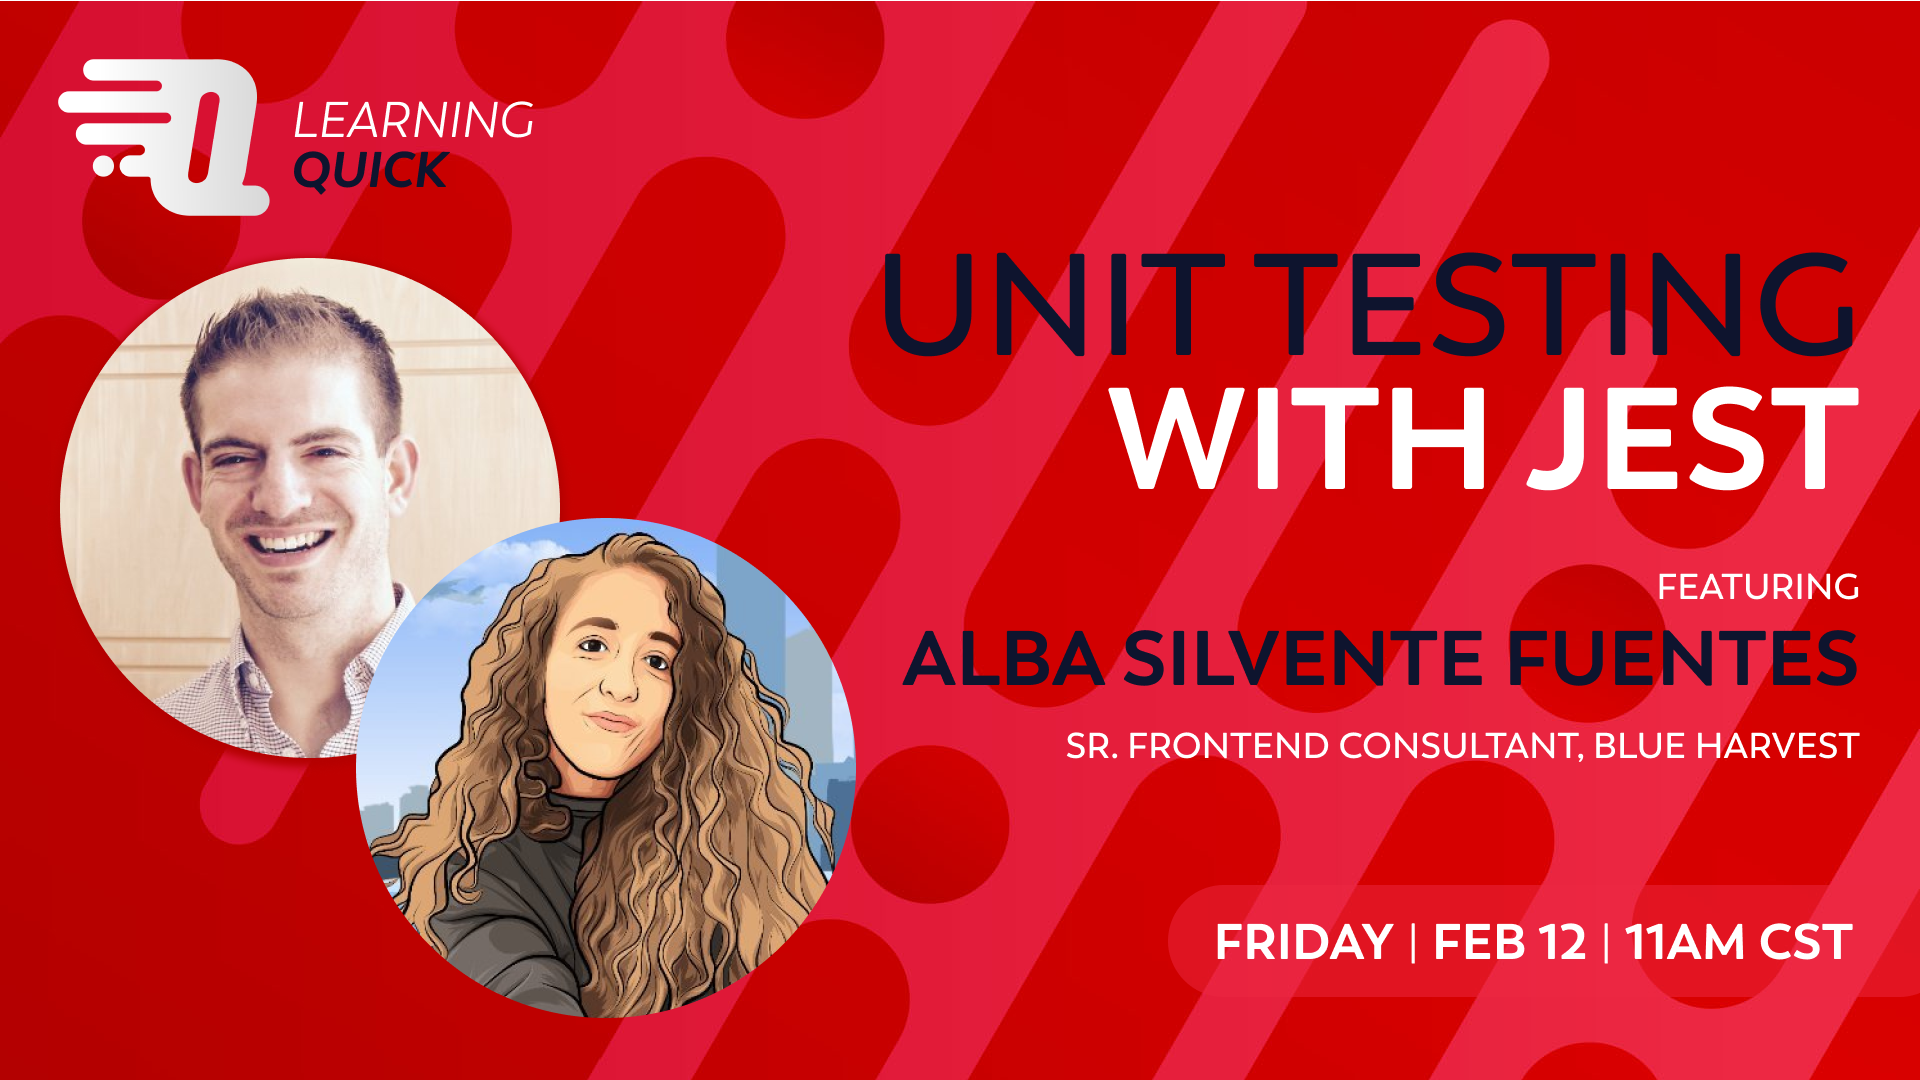 Unit testing with Jest with Alba Fuentes